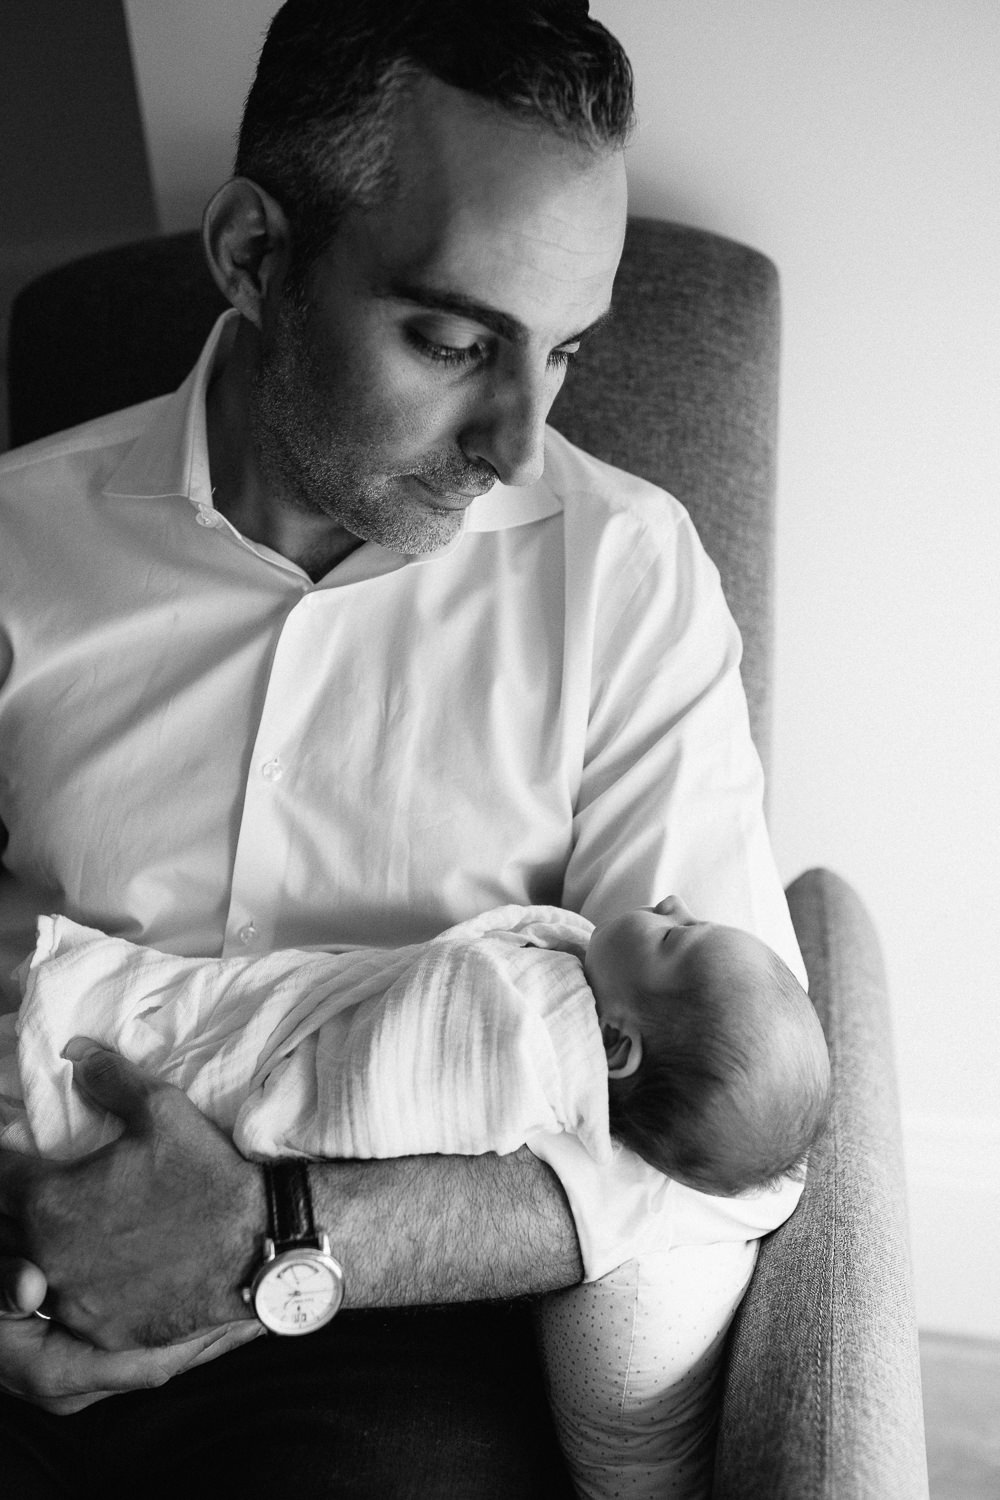 new dad sitting in nursery rocking chair, holding sleeping 2 week old baby boy in his arms, looking at son -Newmarket Lifestyle Photography